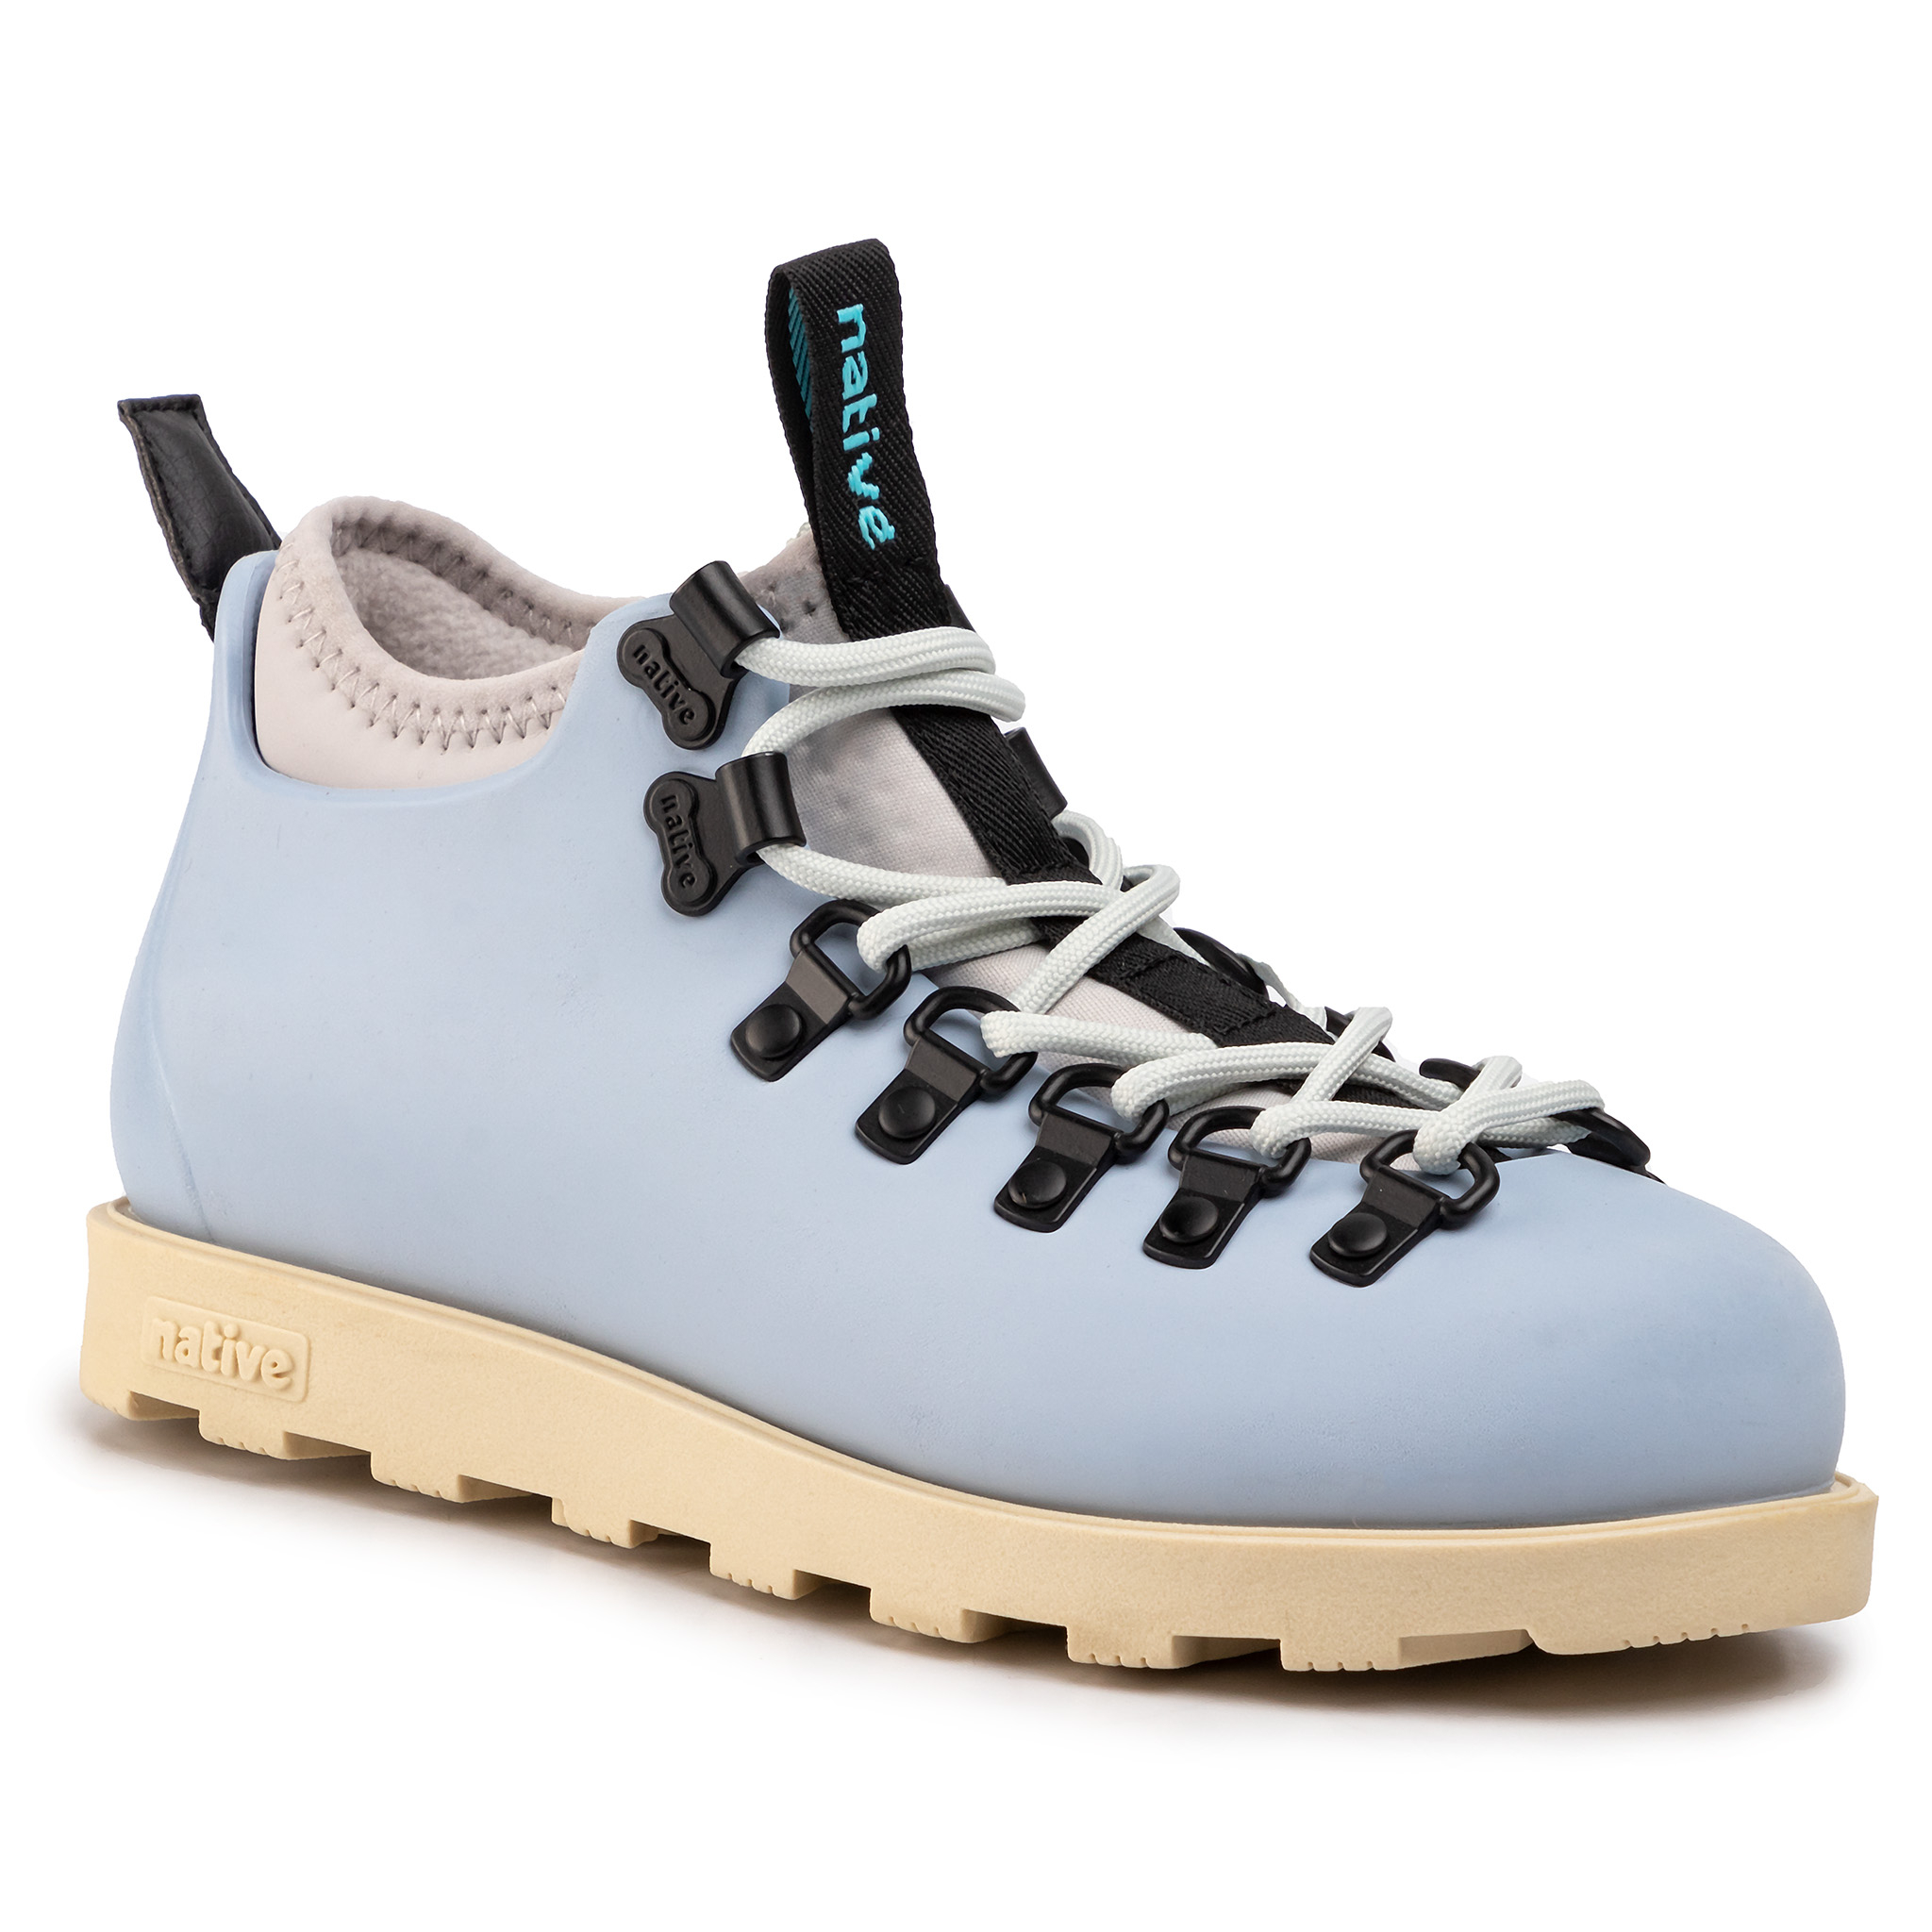 Trappers NATIVE - Fitzsimmons Citylite 31106800-4983 Bell Blue/Bone White